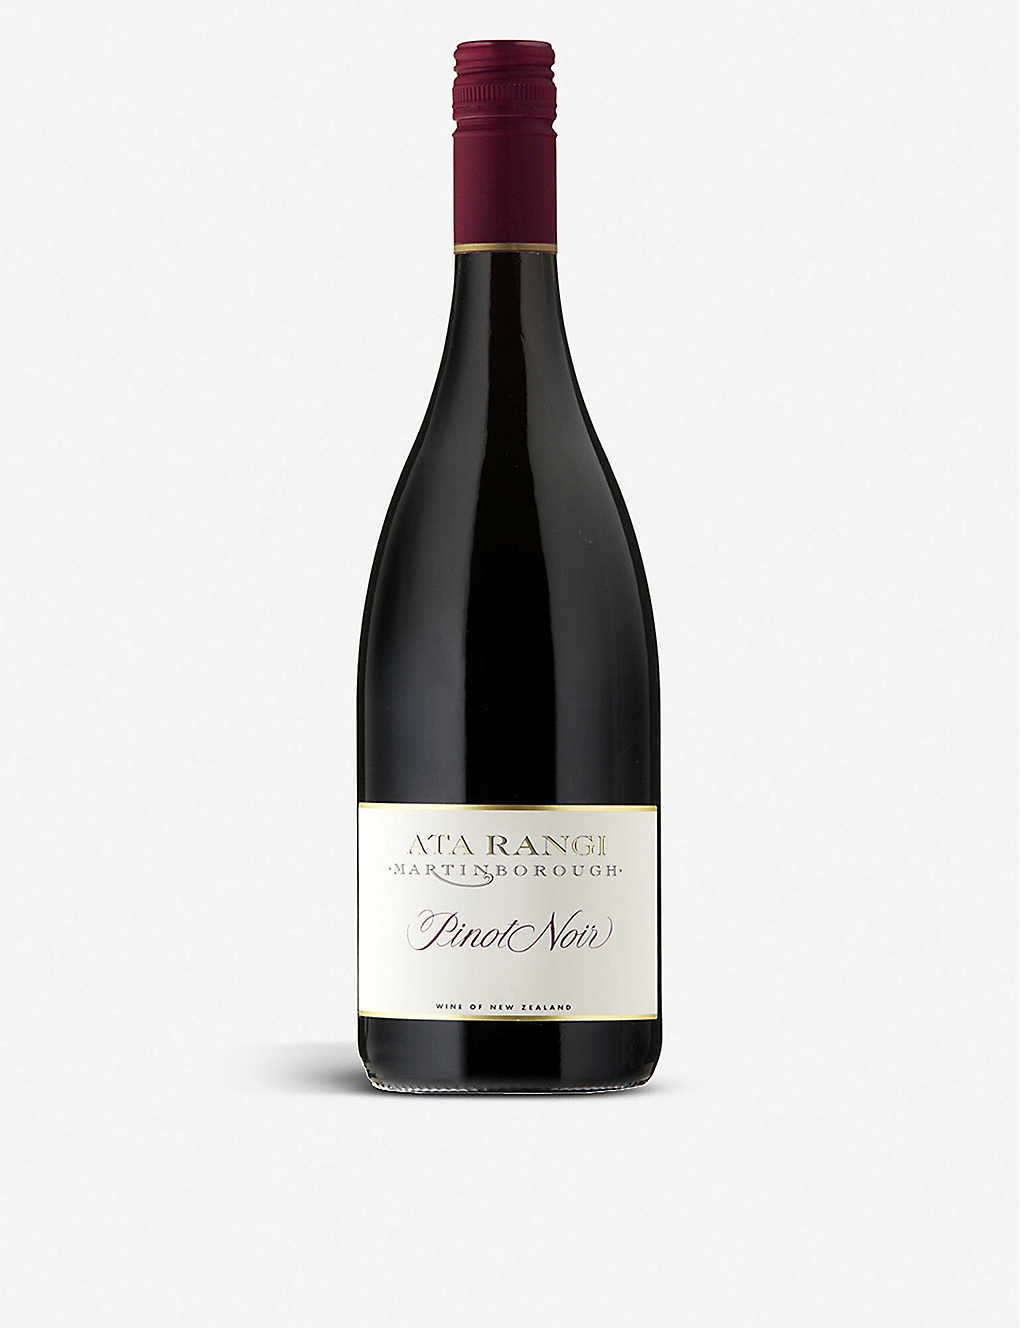 NEW ZEALAND: Ata Rangi 2016 pinot noir 750ml